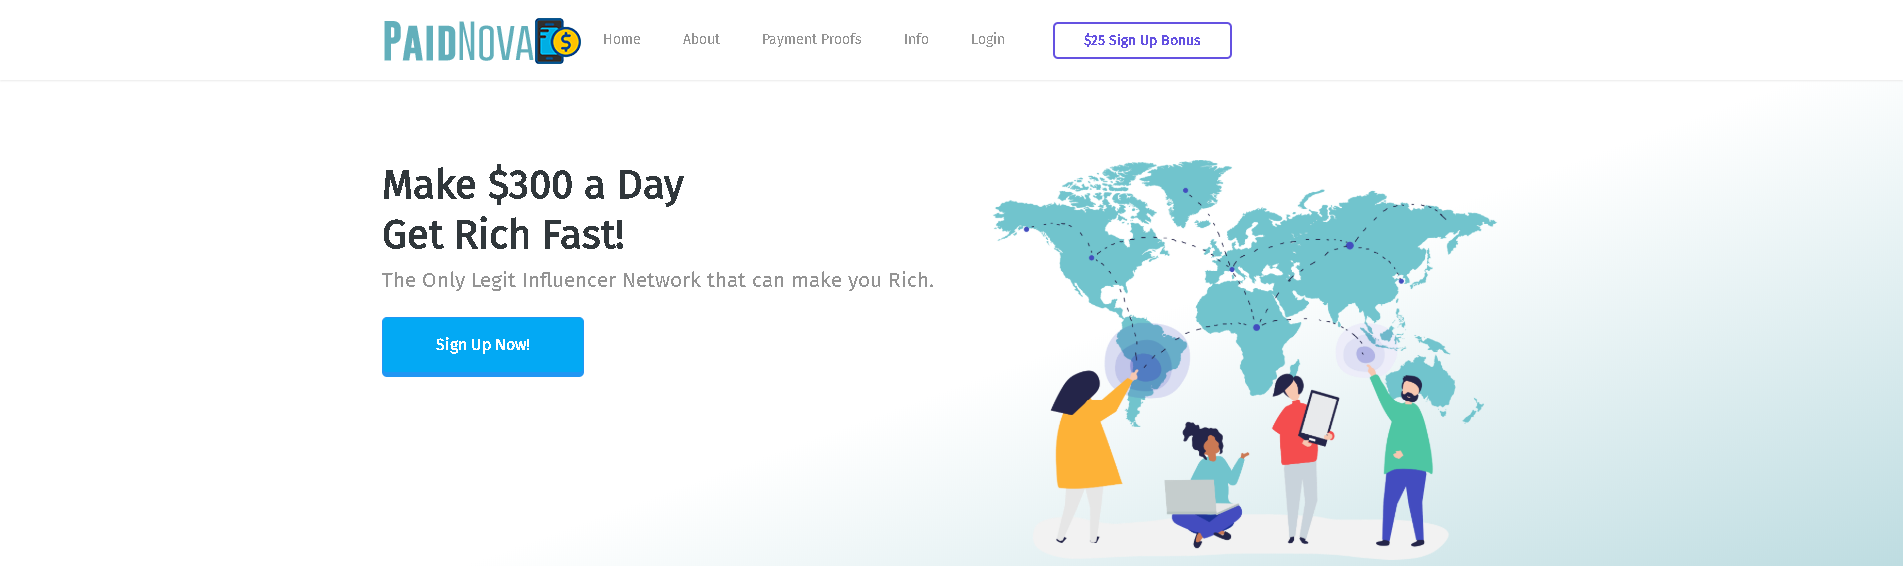 PaidNove Scam Review